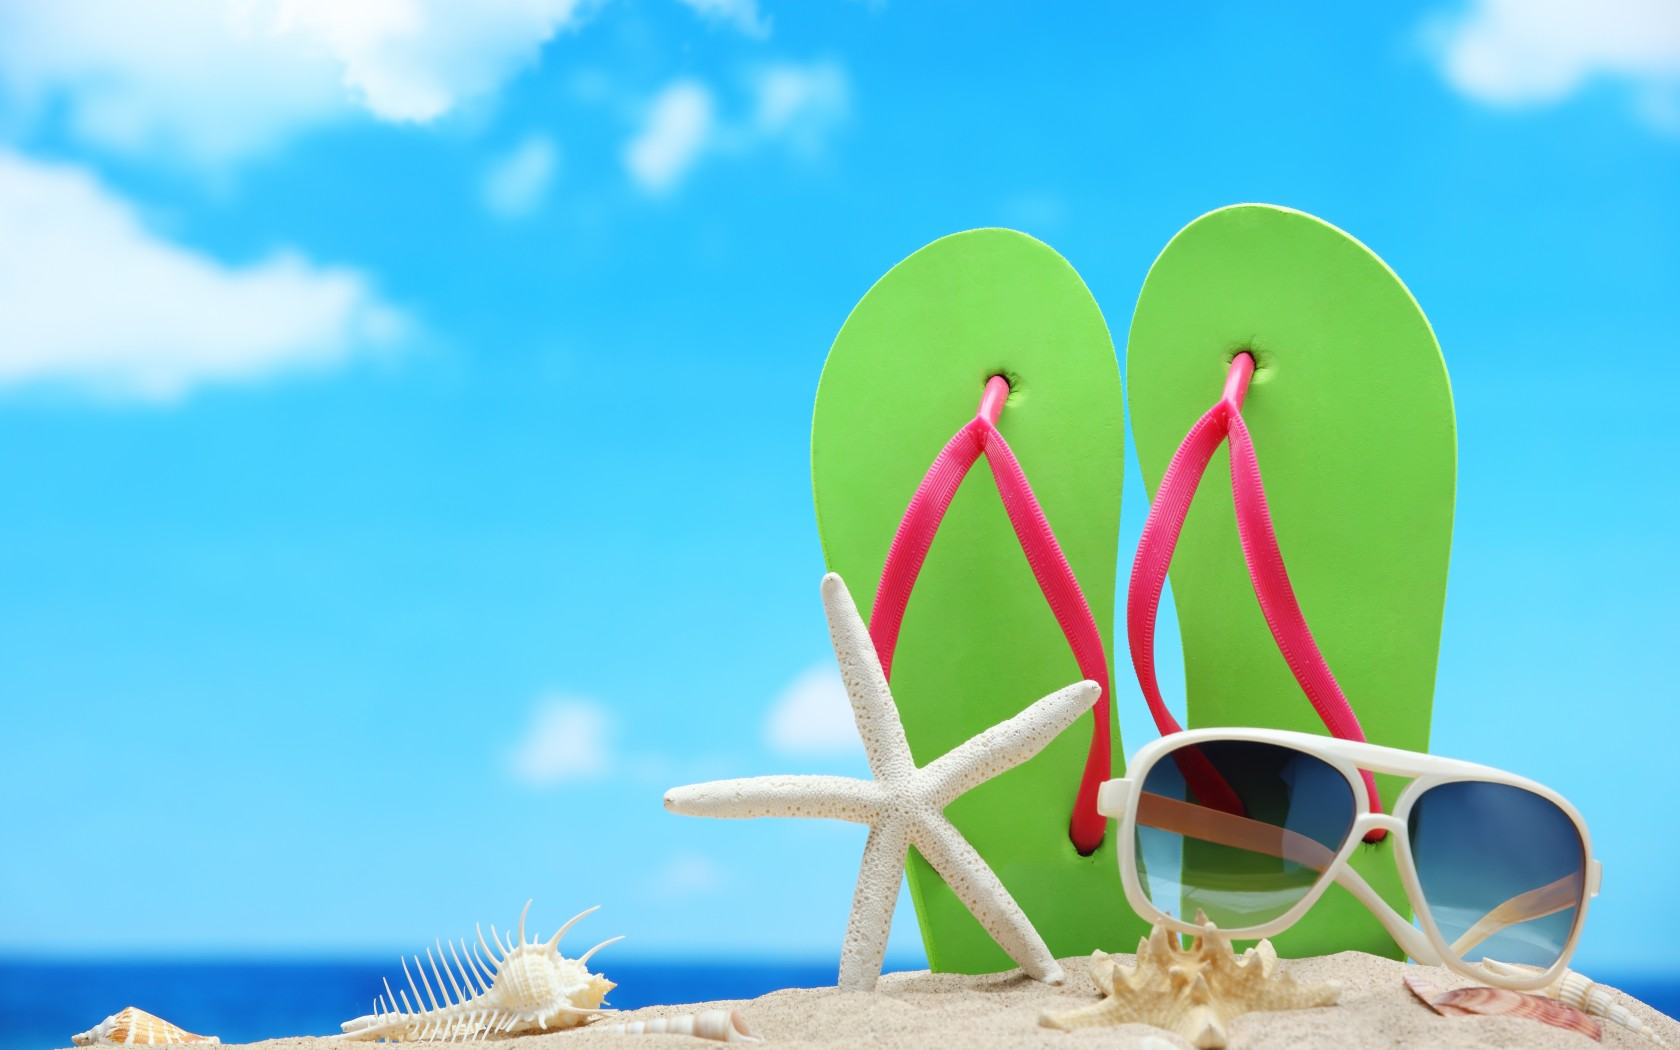 Flip Flops In Sand On Beach wallpaper by thunguyen102 1680x1050